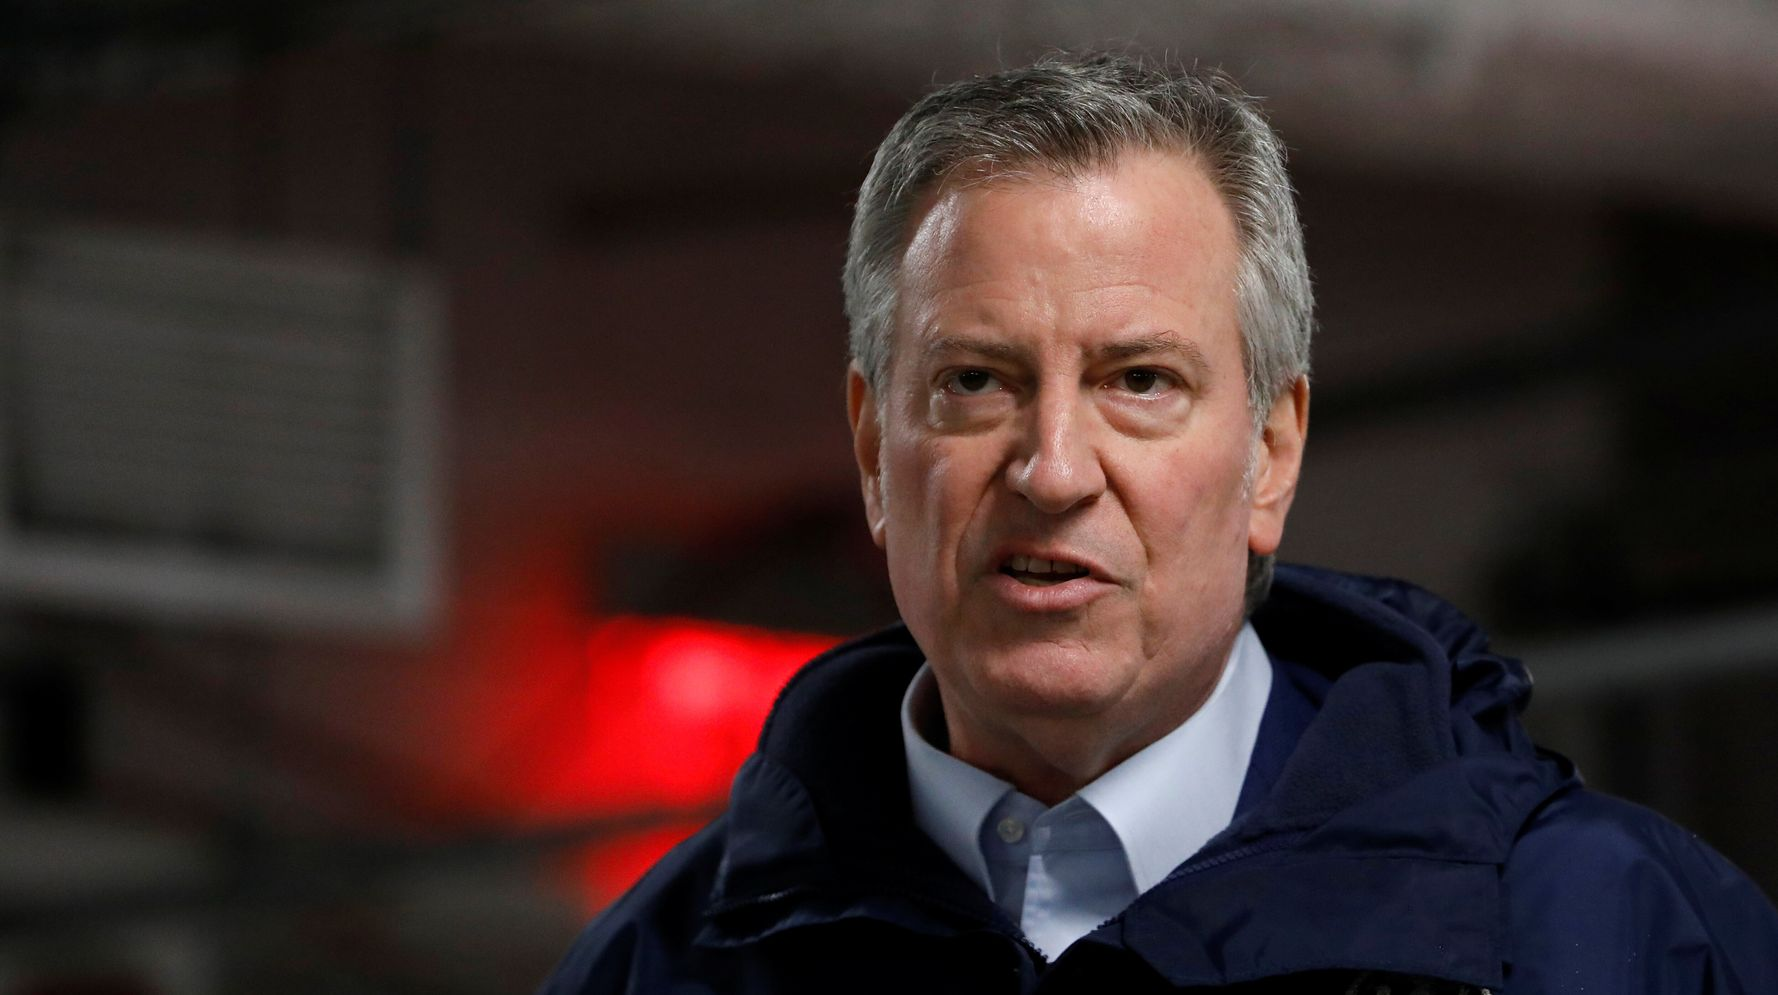 Bill De Blasio Claims Proof Coronavirus Spreads Without Symptoms Only Came Recently